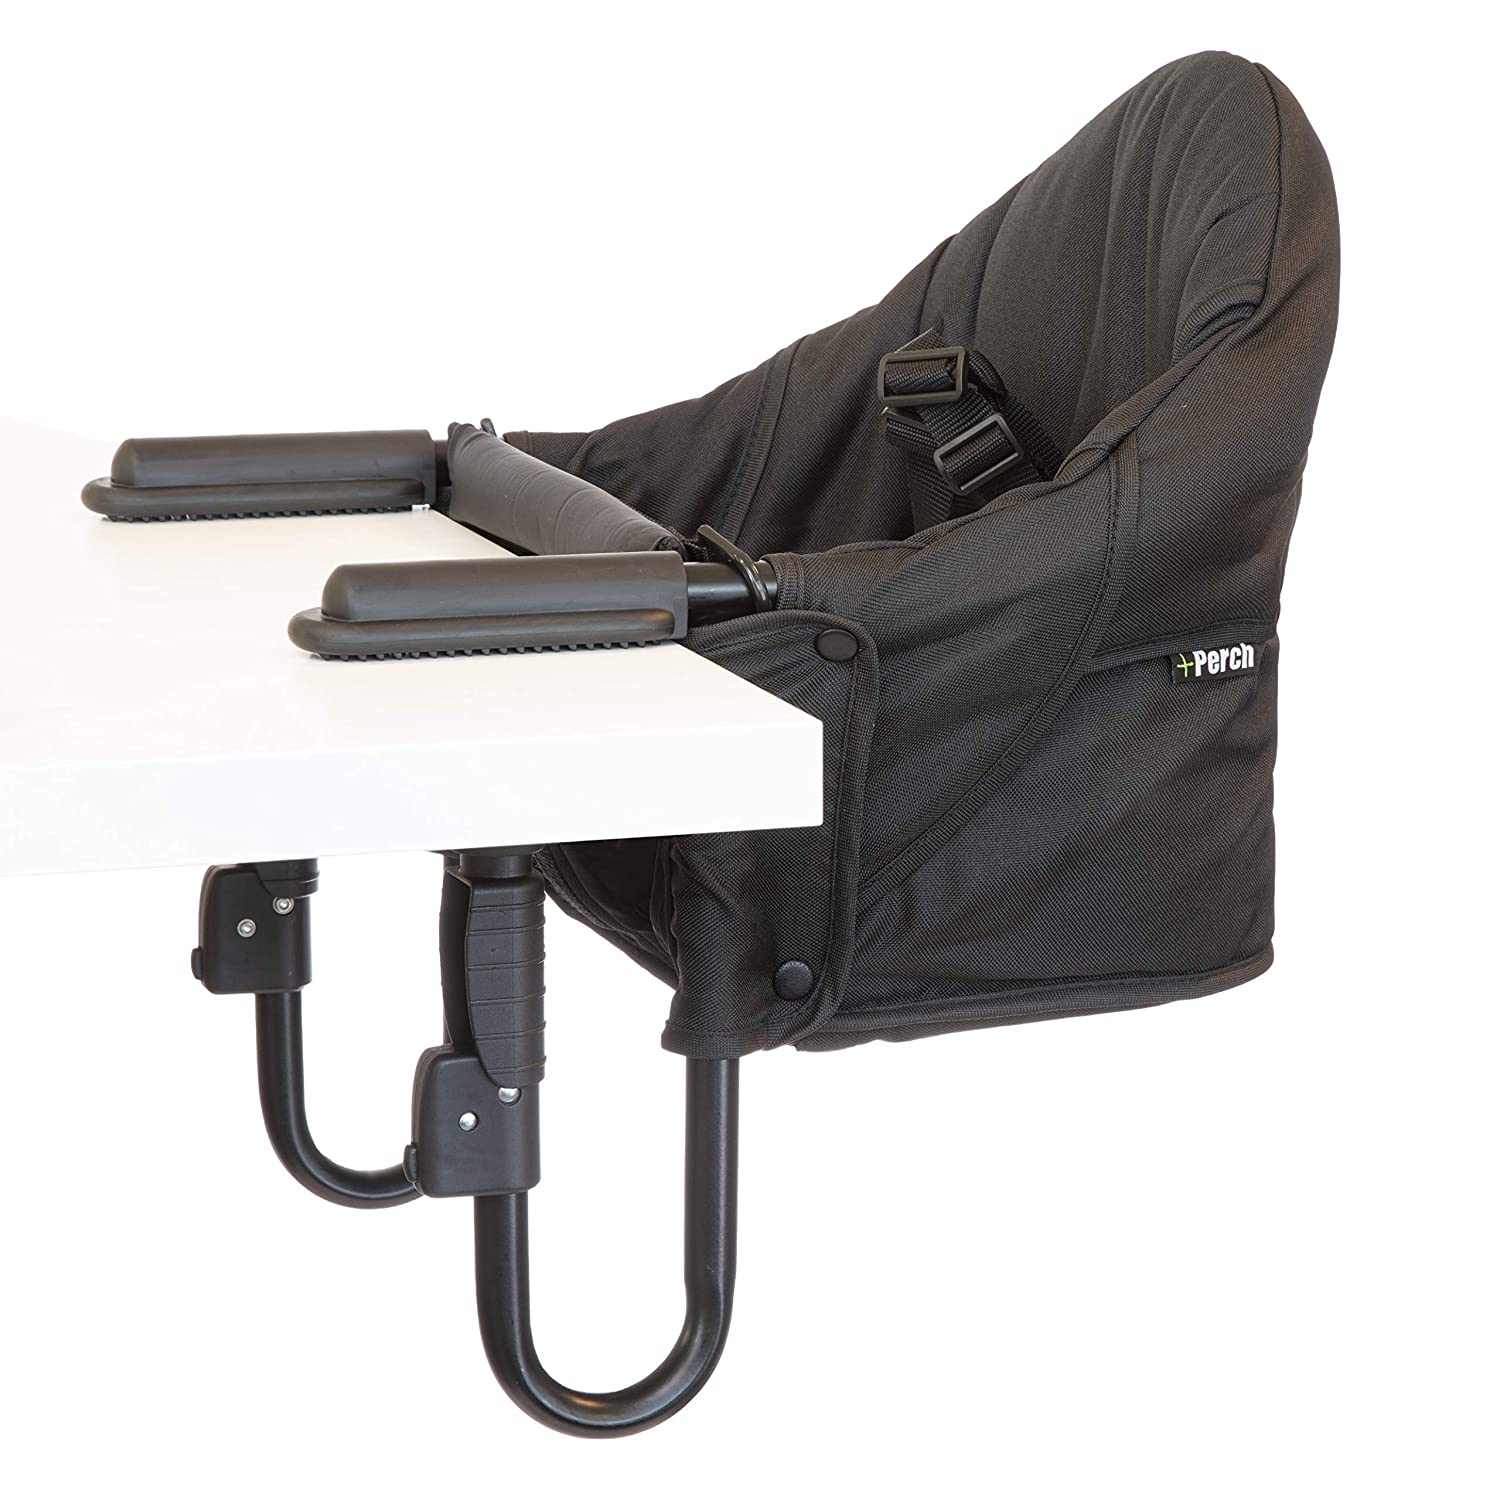 guzzie+Guss Perch Best Clip On Table Chair